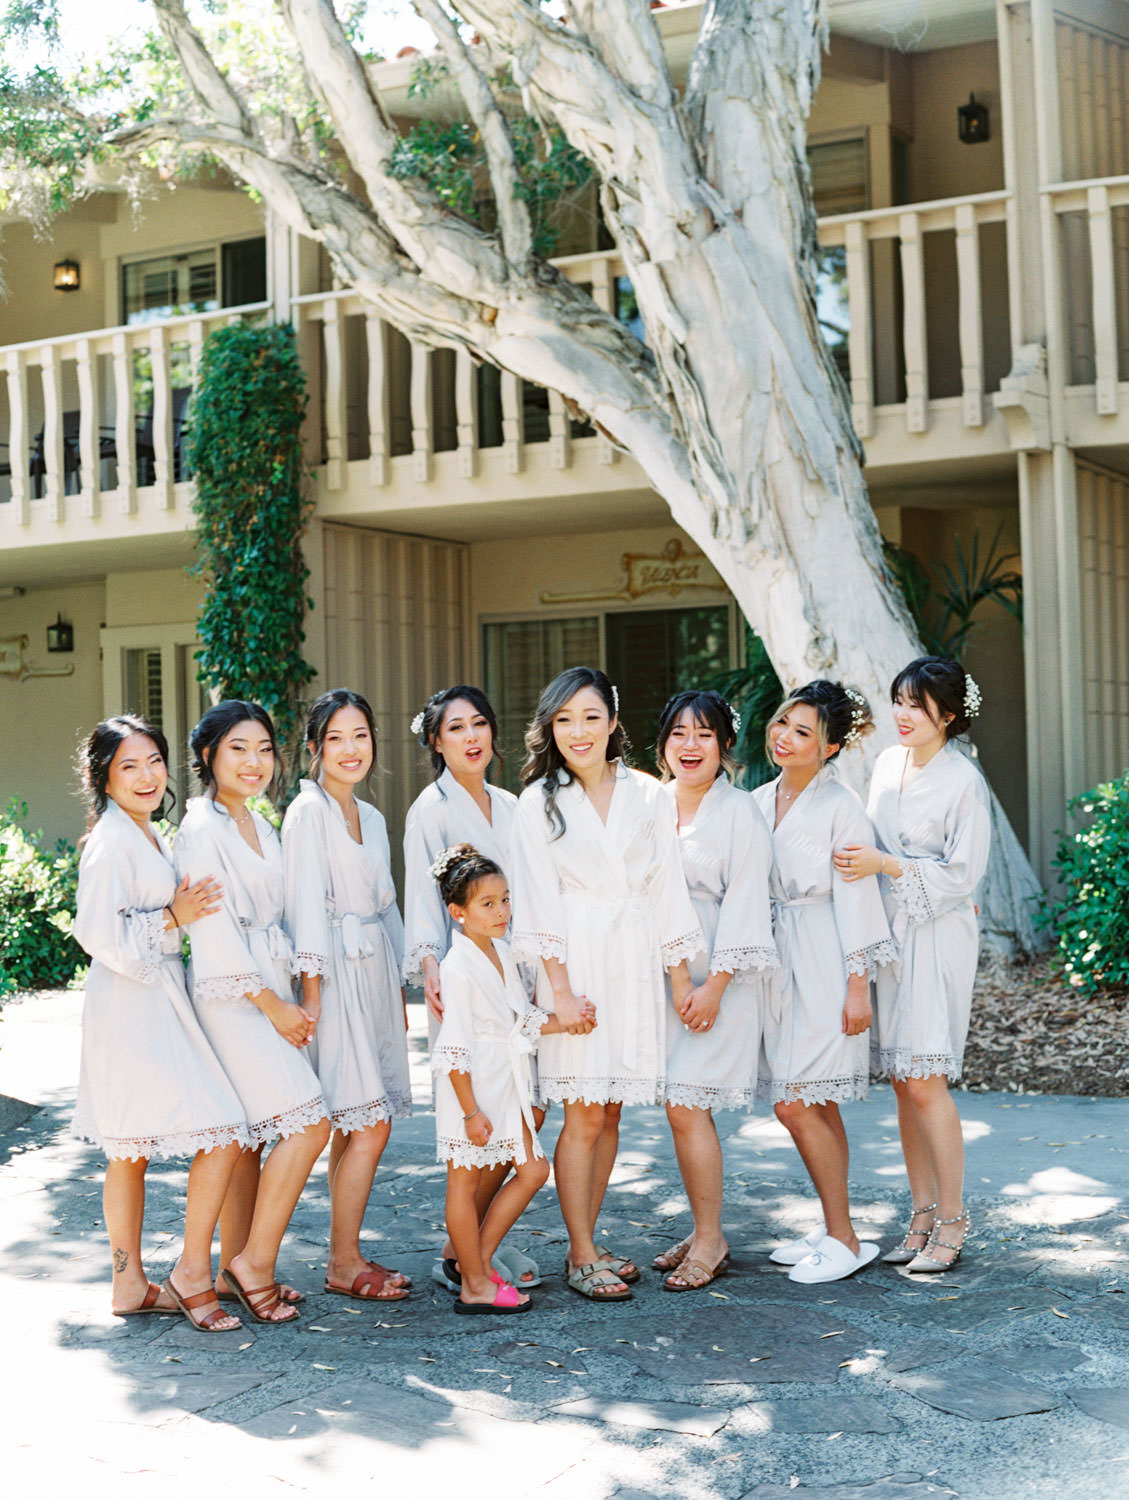 Bride in a white robe and bridesmaids in soft grey robes getting ready. Wedding at Rancho Bernardo Inn. Film photo by Cavin Elizabeth Photography